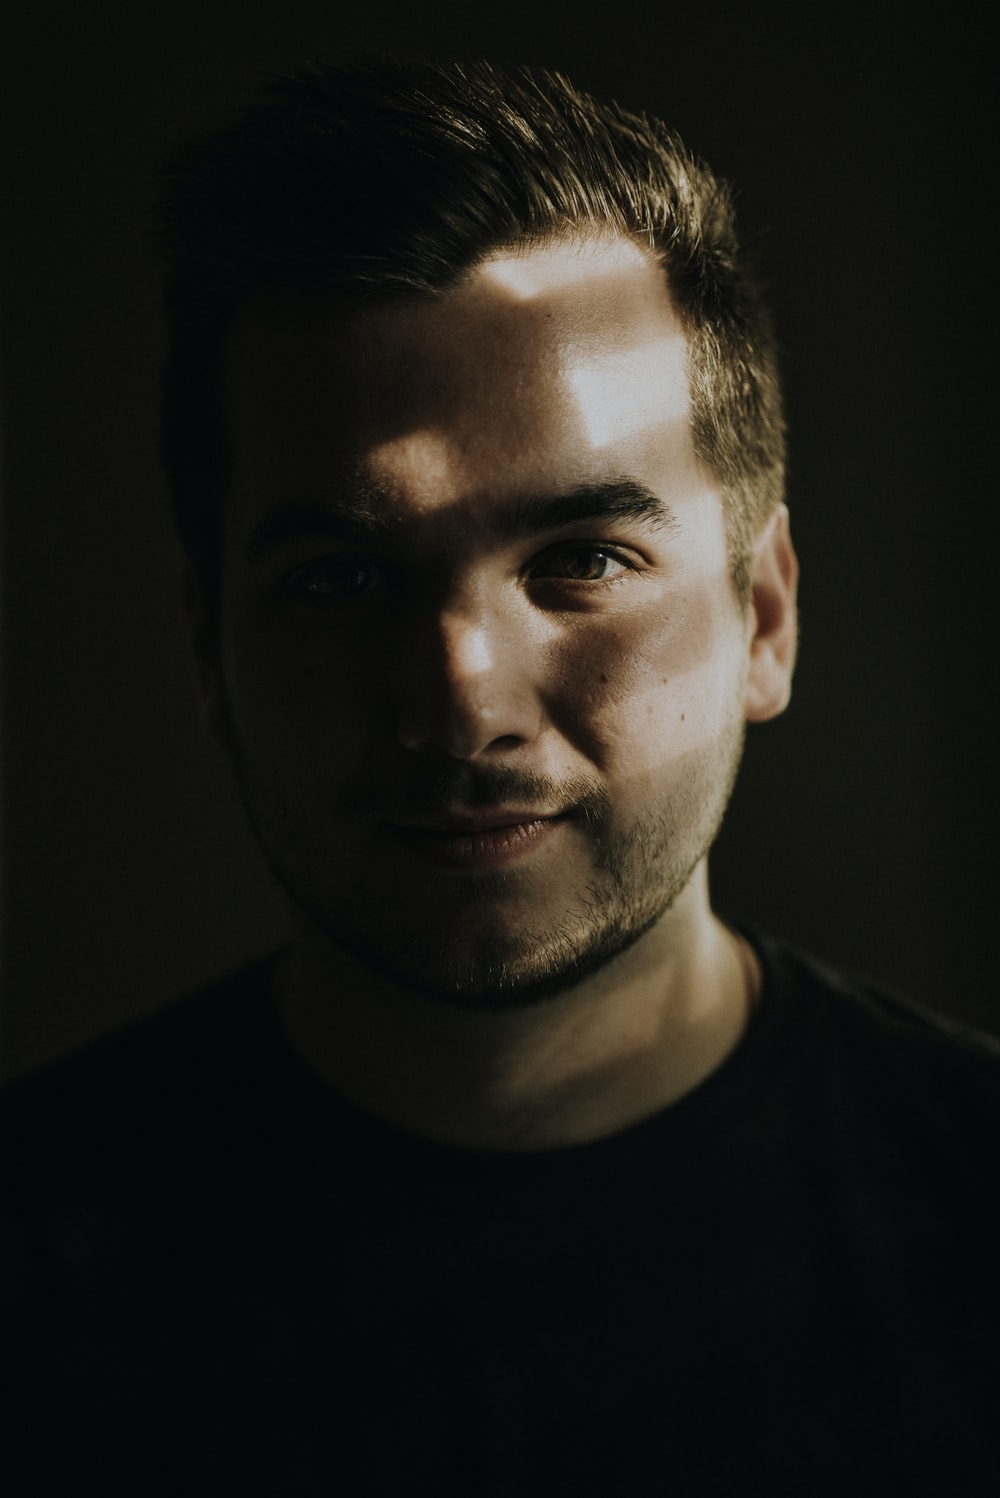 portrait photography of sunlight reflecting on man's face